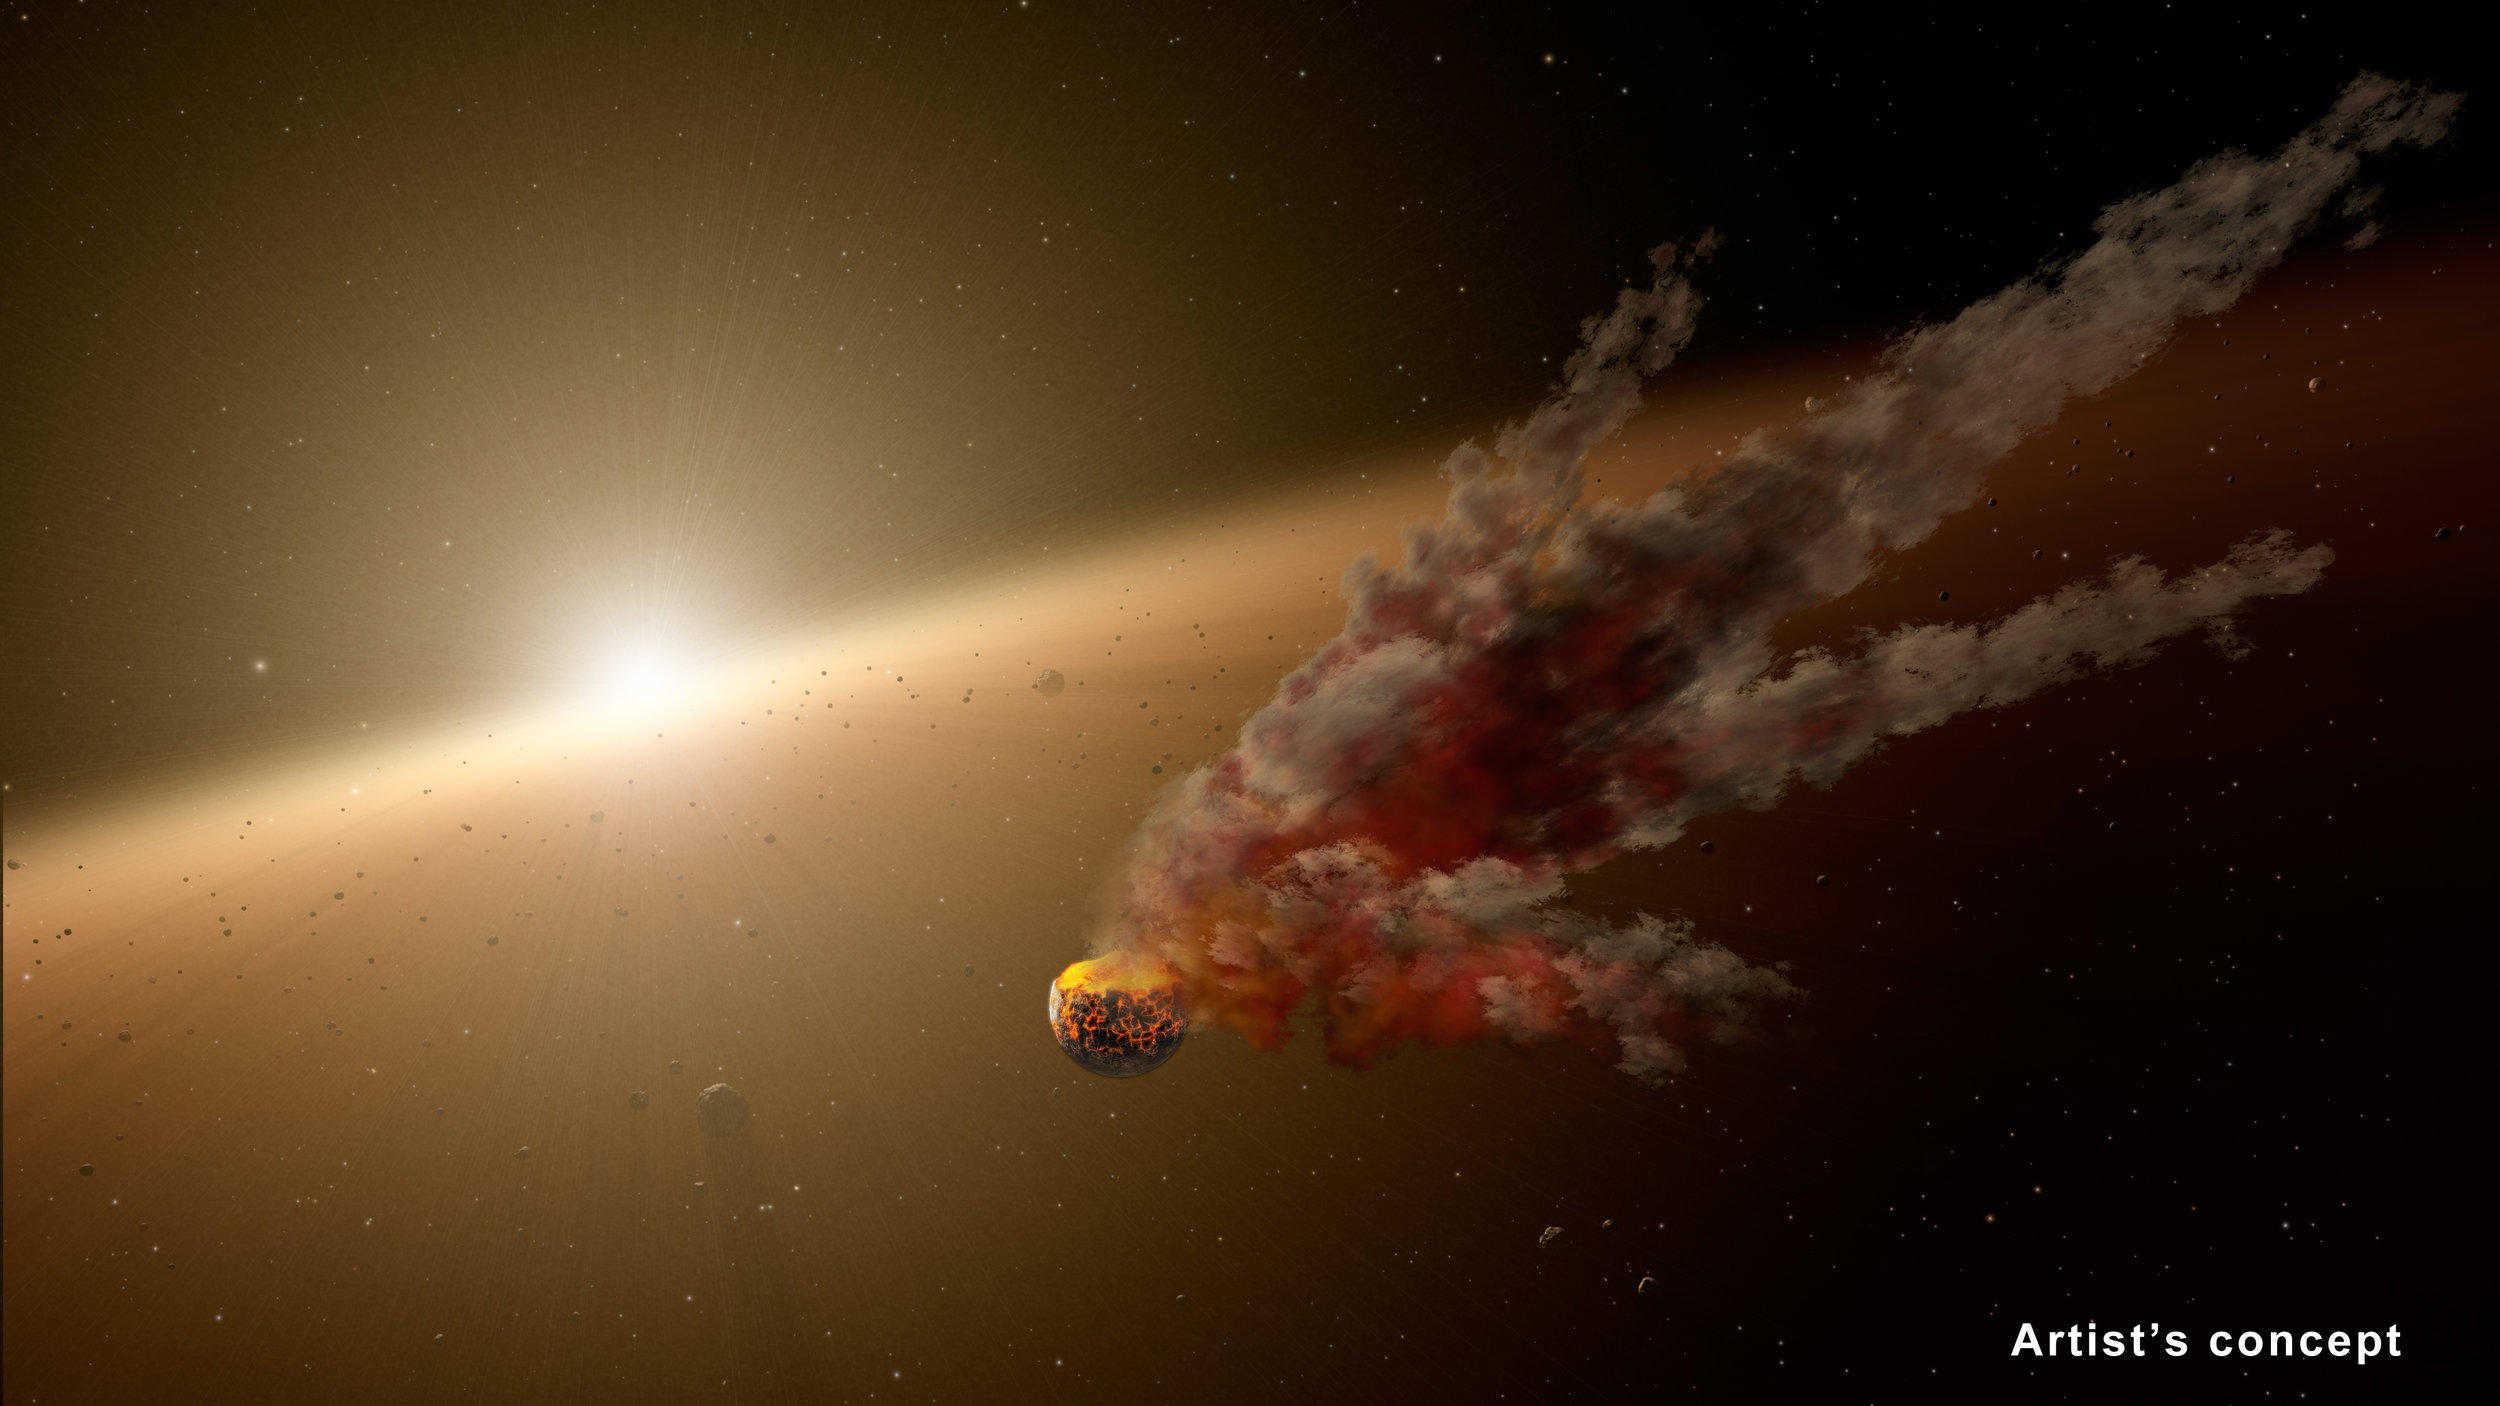 """Planets, including those like our own Earth, form from epic collisions between asteroids and even bigger bodies, called proto-planets. Sometimes the colliding bodies are ground to dust, and sometimes they stick together to ultimately form larger, mature planets. This artist's conception shows one such smash-up, the evidence for which was collected by NASA's Spitzer Space Telescope. Spitzer's infrared vision detected a huge eruption around the star NGC 2547-ID8 between August 2012 and 2013. Scientists think the dust was kicked up by a massive collision between two large asteroids. They say the smashup took place in the star's """"terrestrial zone,"""" the region around stars where rocky planets like Earth take shape. Image credit: NASA/JPL-Caltech"""